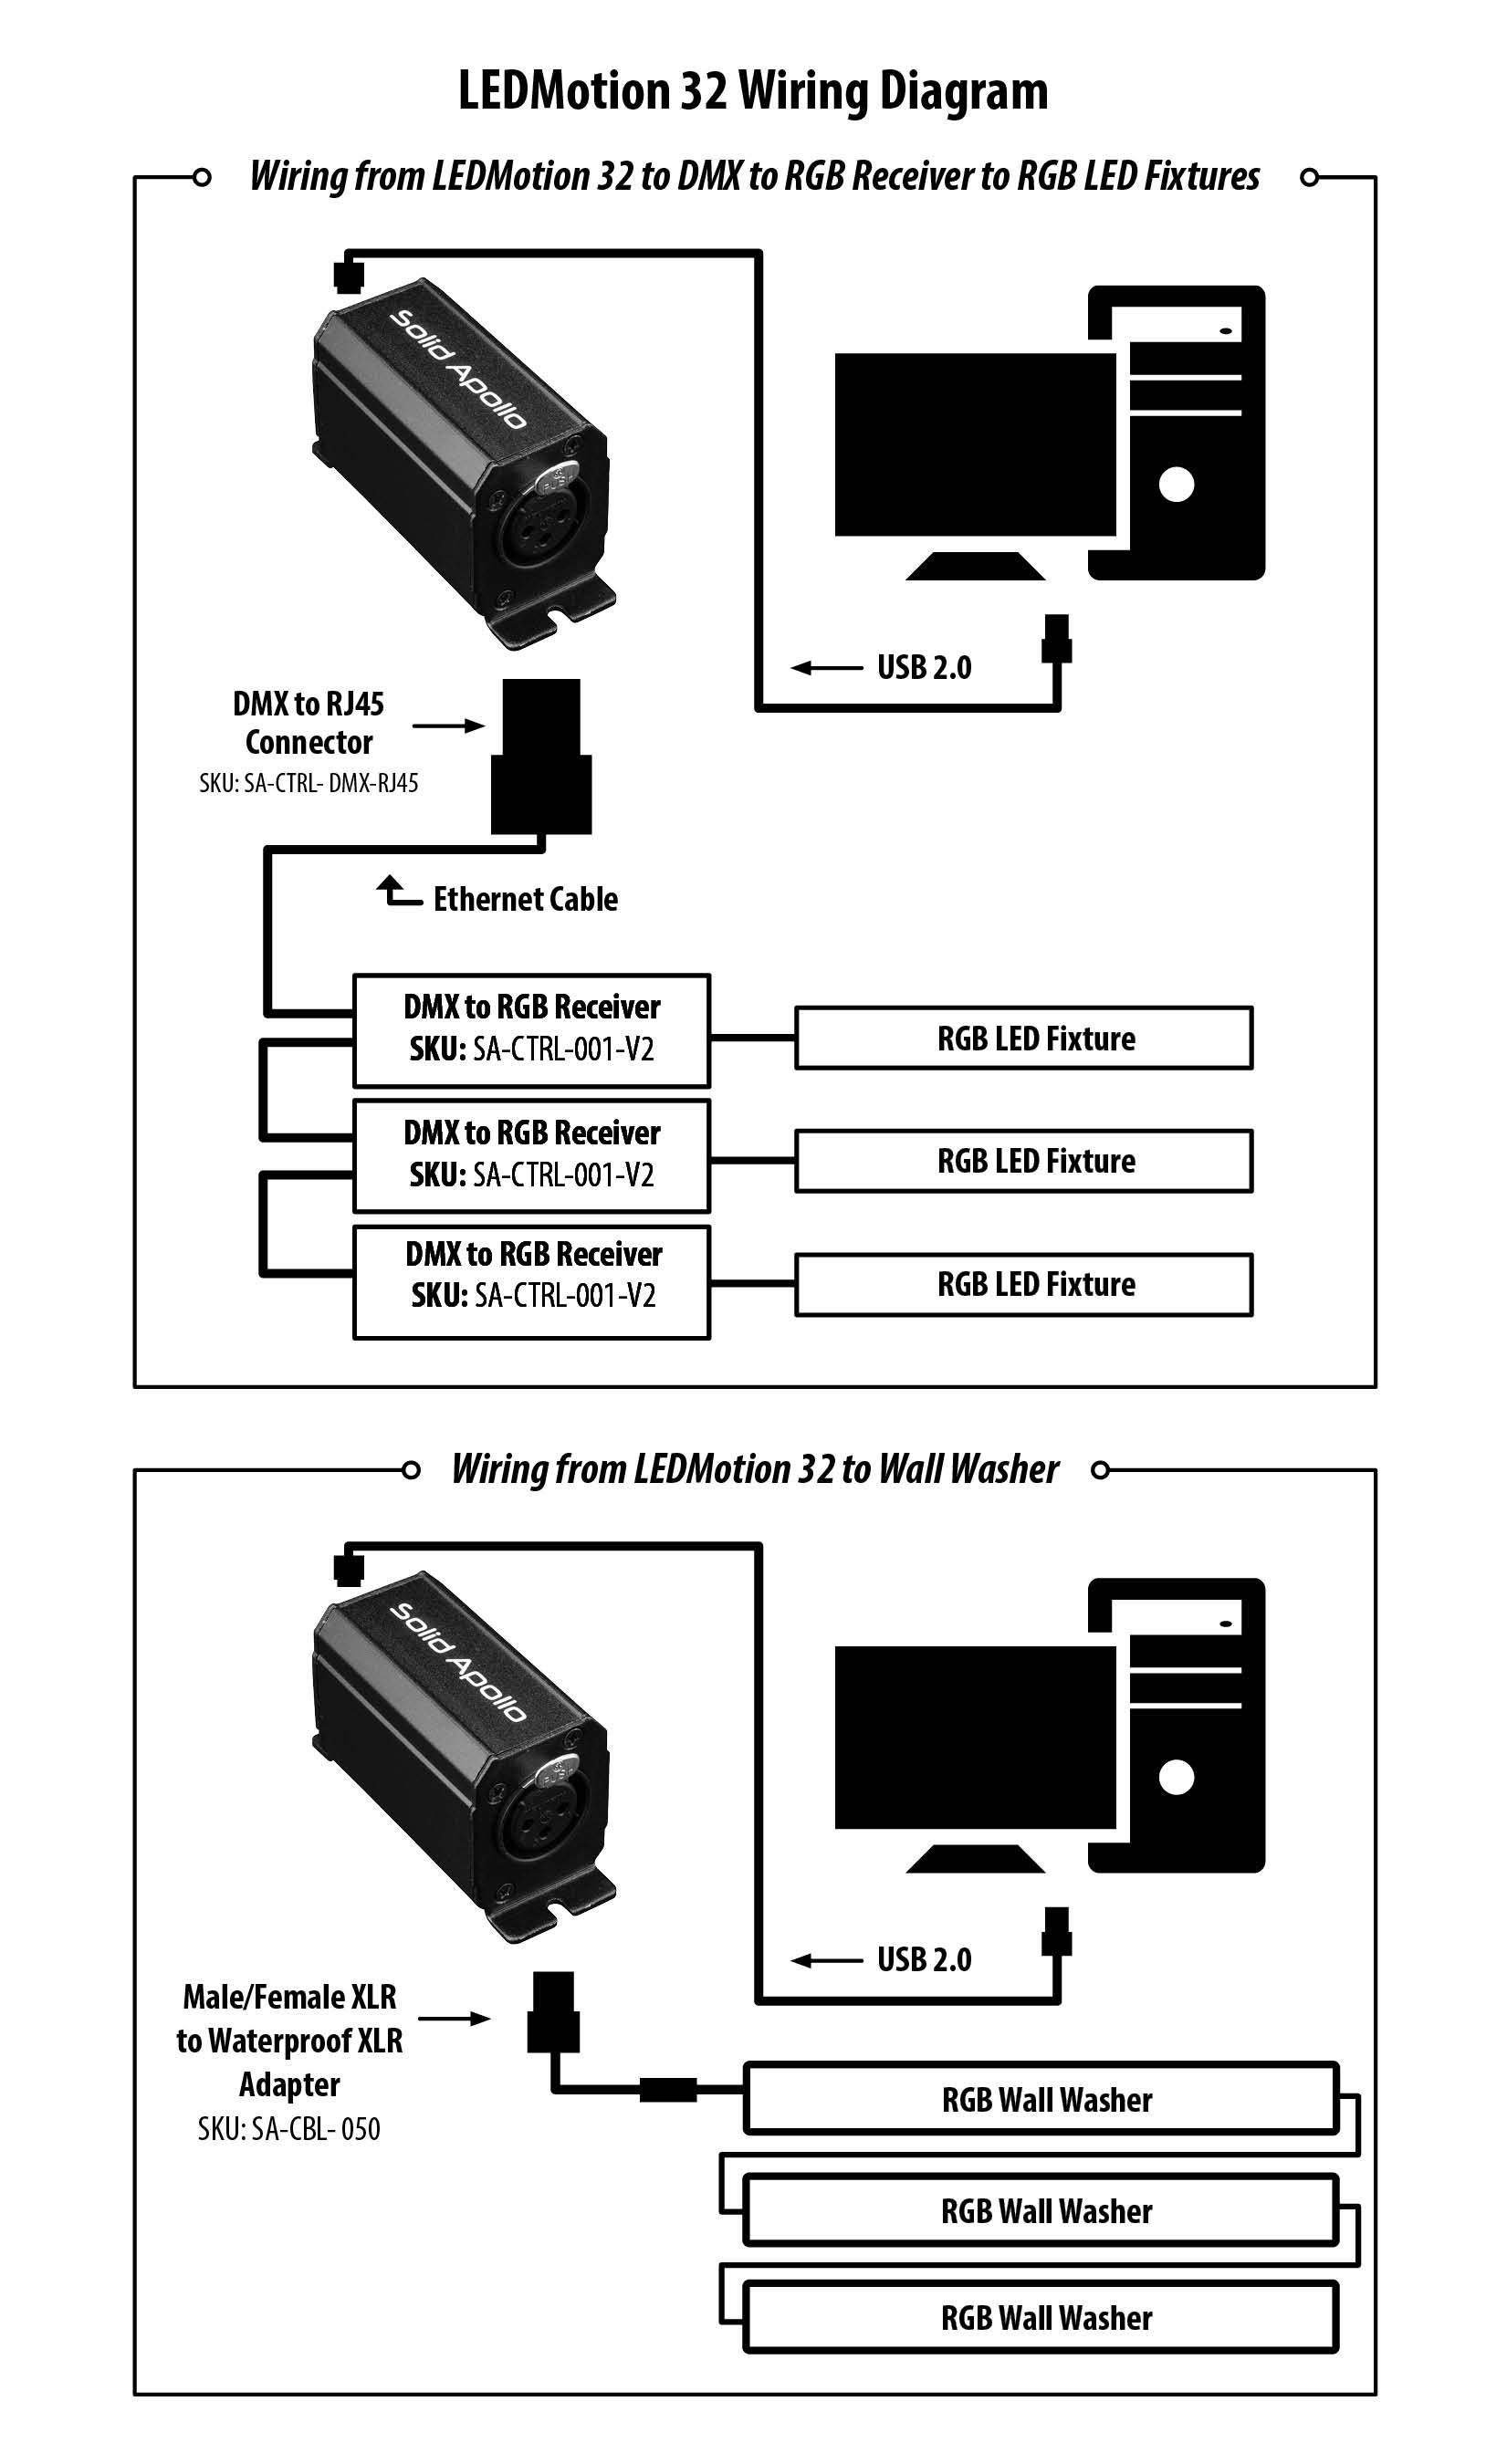 hight resolution of ledmotion 32 rj45 b wiring diagram dmx rj45 wiring diagram